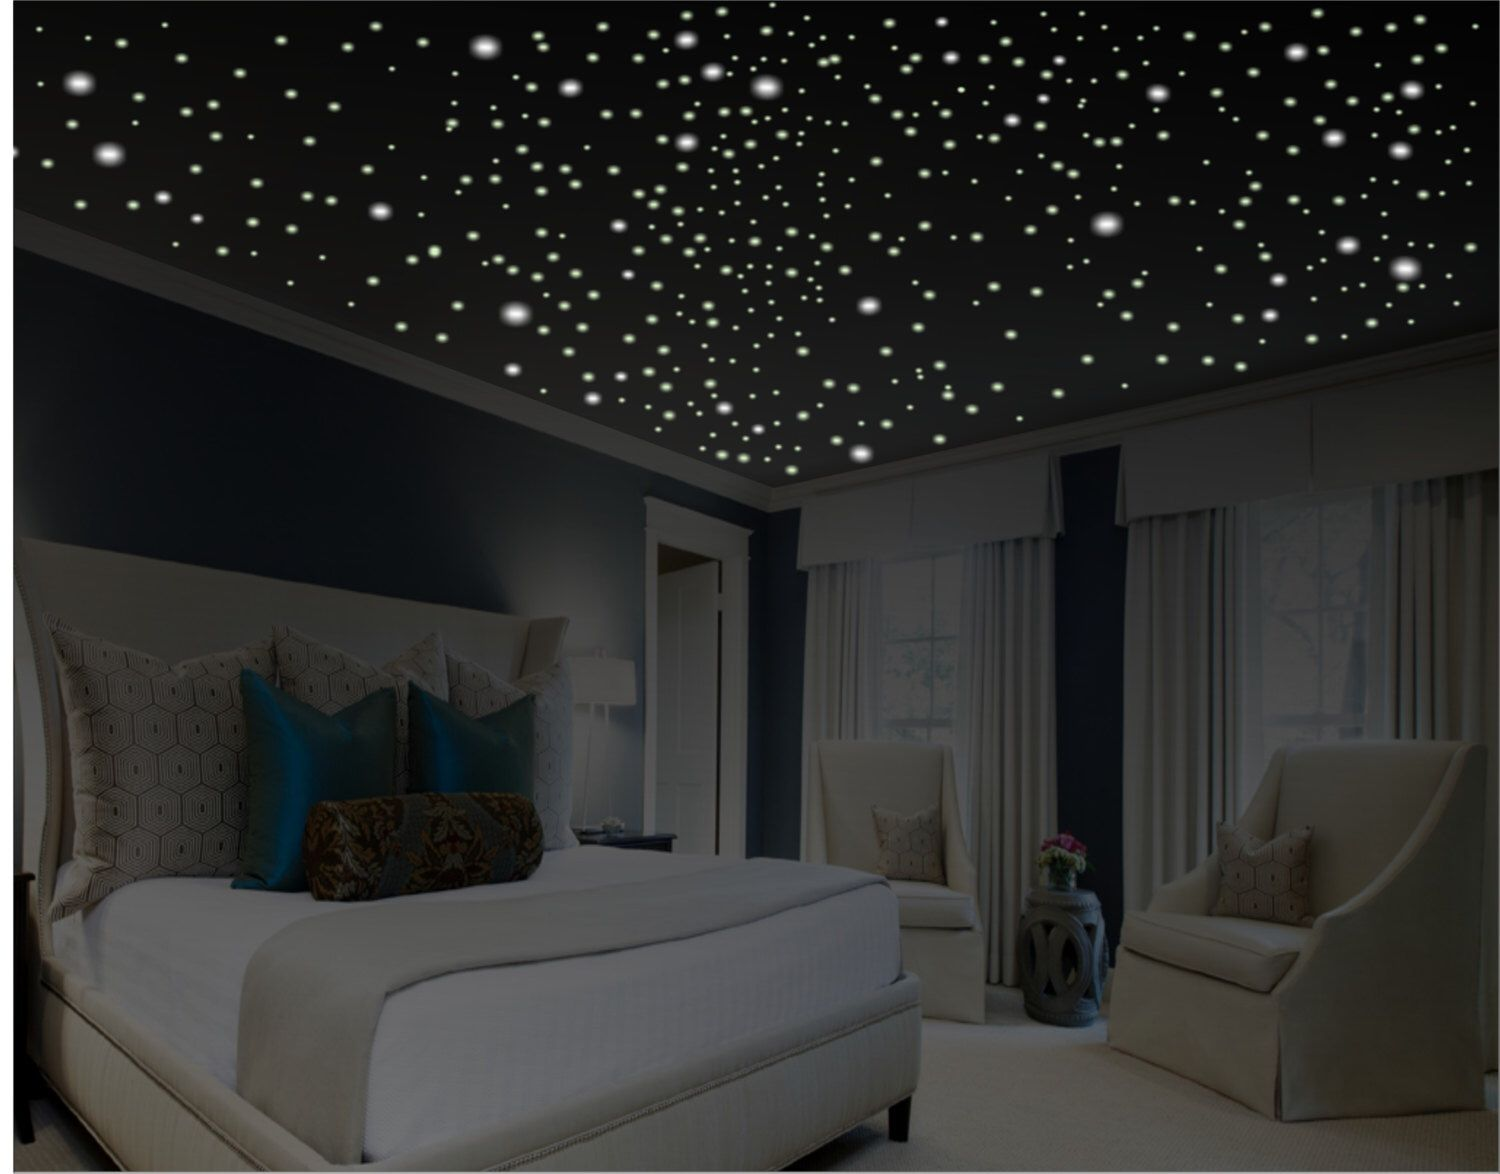 Glow In The Dark Stars Romantic Bedroom Decor Romantic Gift - Romantic bedroom decorating ideas for anniversary